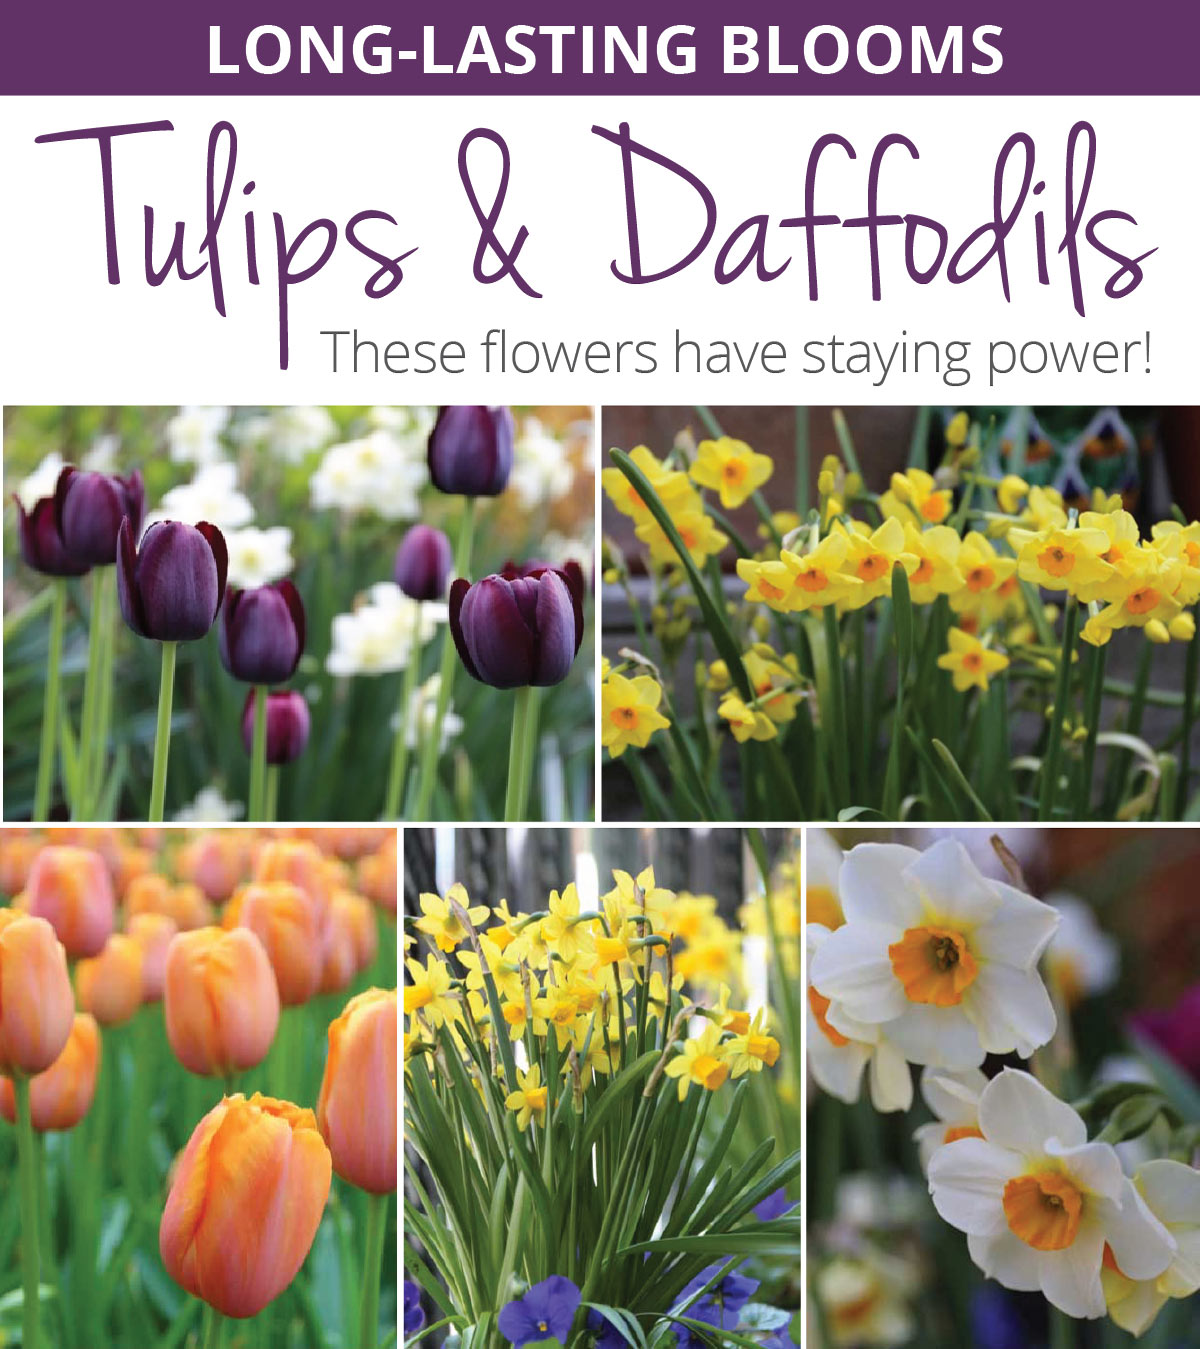 Long-Lasting-Tulips-and-Daffodils.jpg